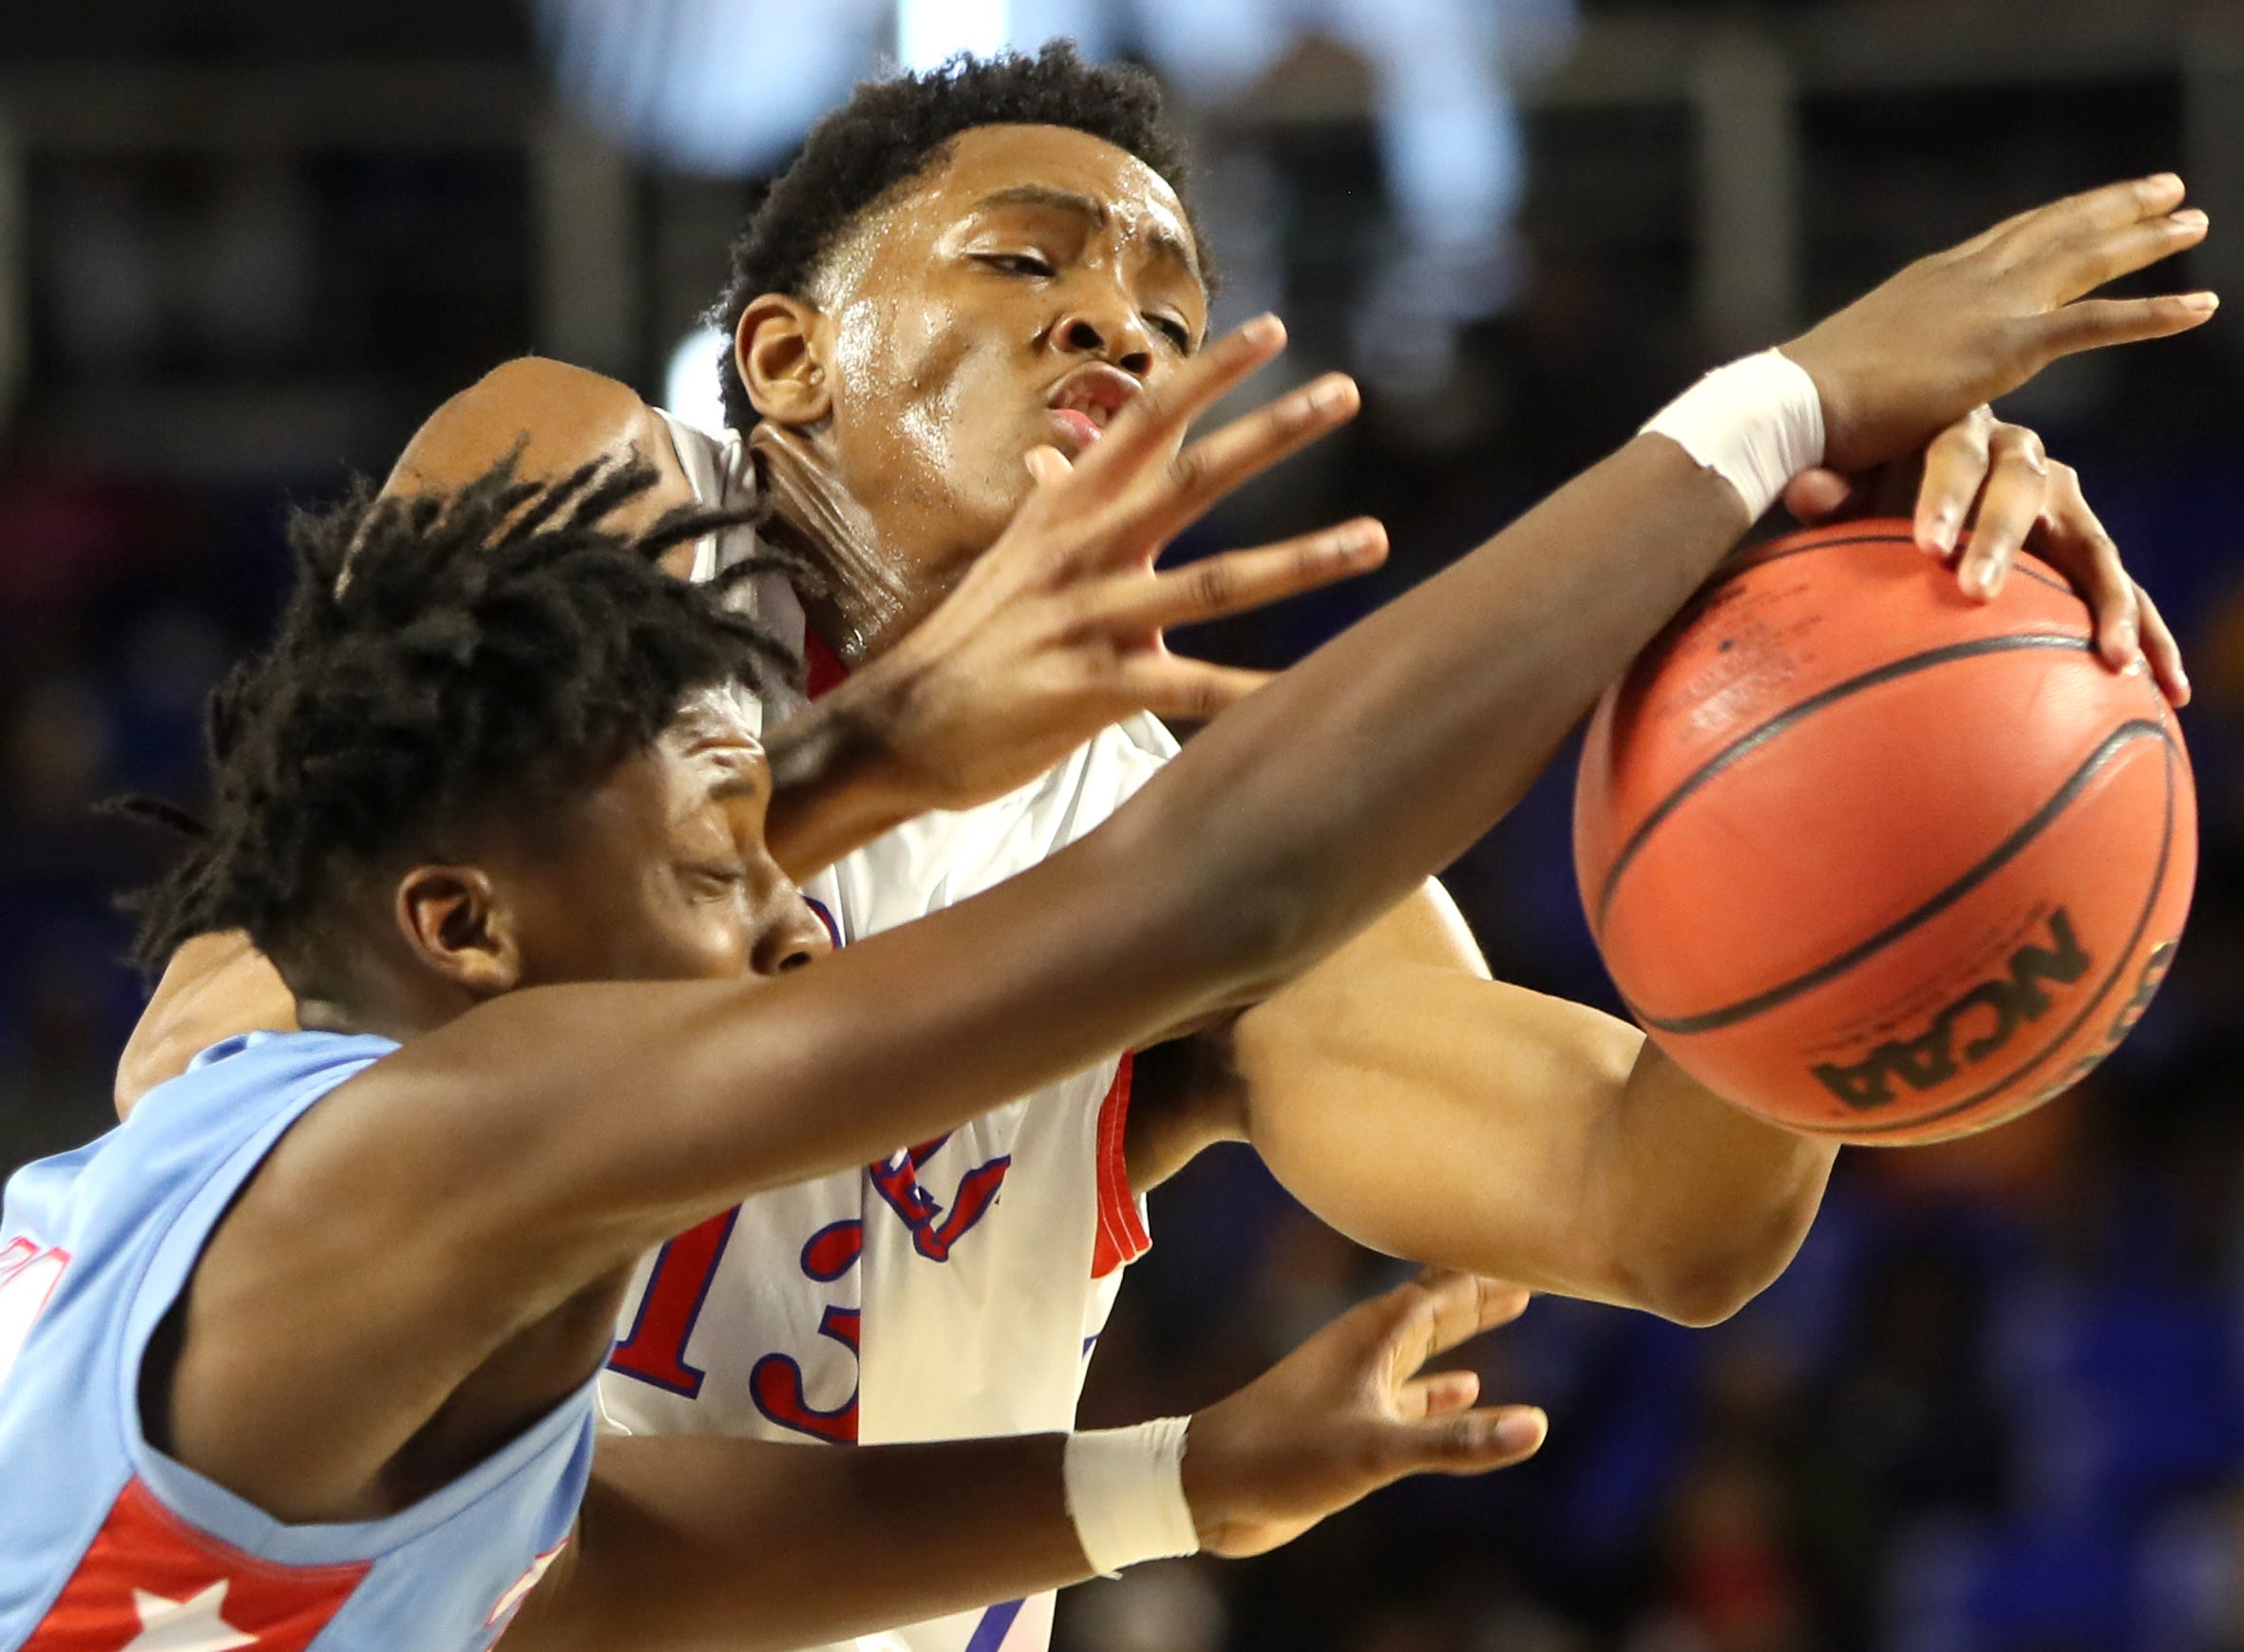 Wooddale's Chandler Lawson is stripped by Brainerd's Ciante Chaney during the Class AA boys basketball state semifinal at the Murphy Center in Murfreesboro, Tenn. on Thursday, March 14, 2019.